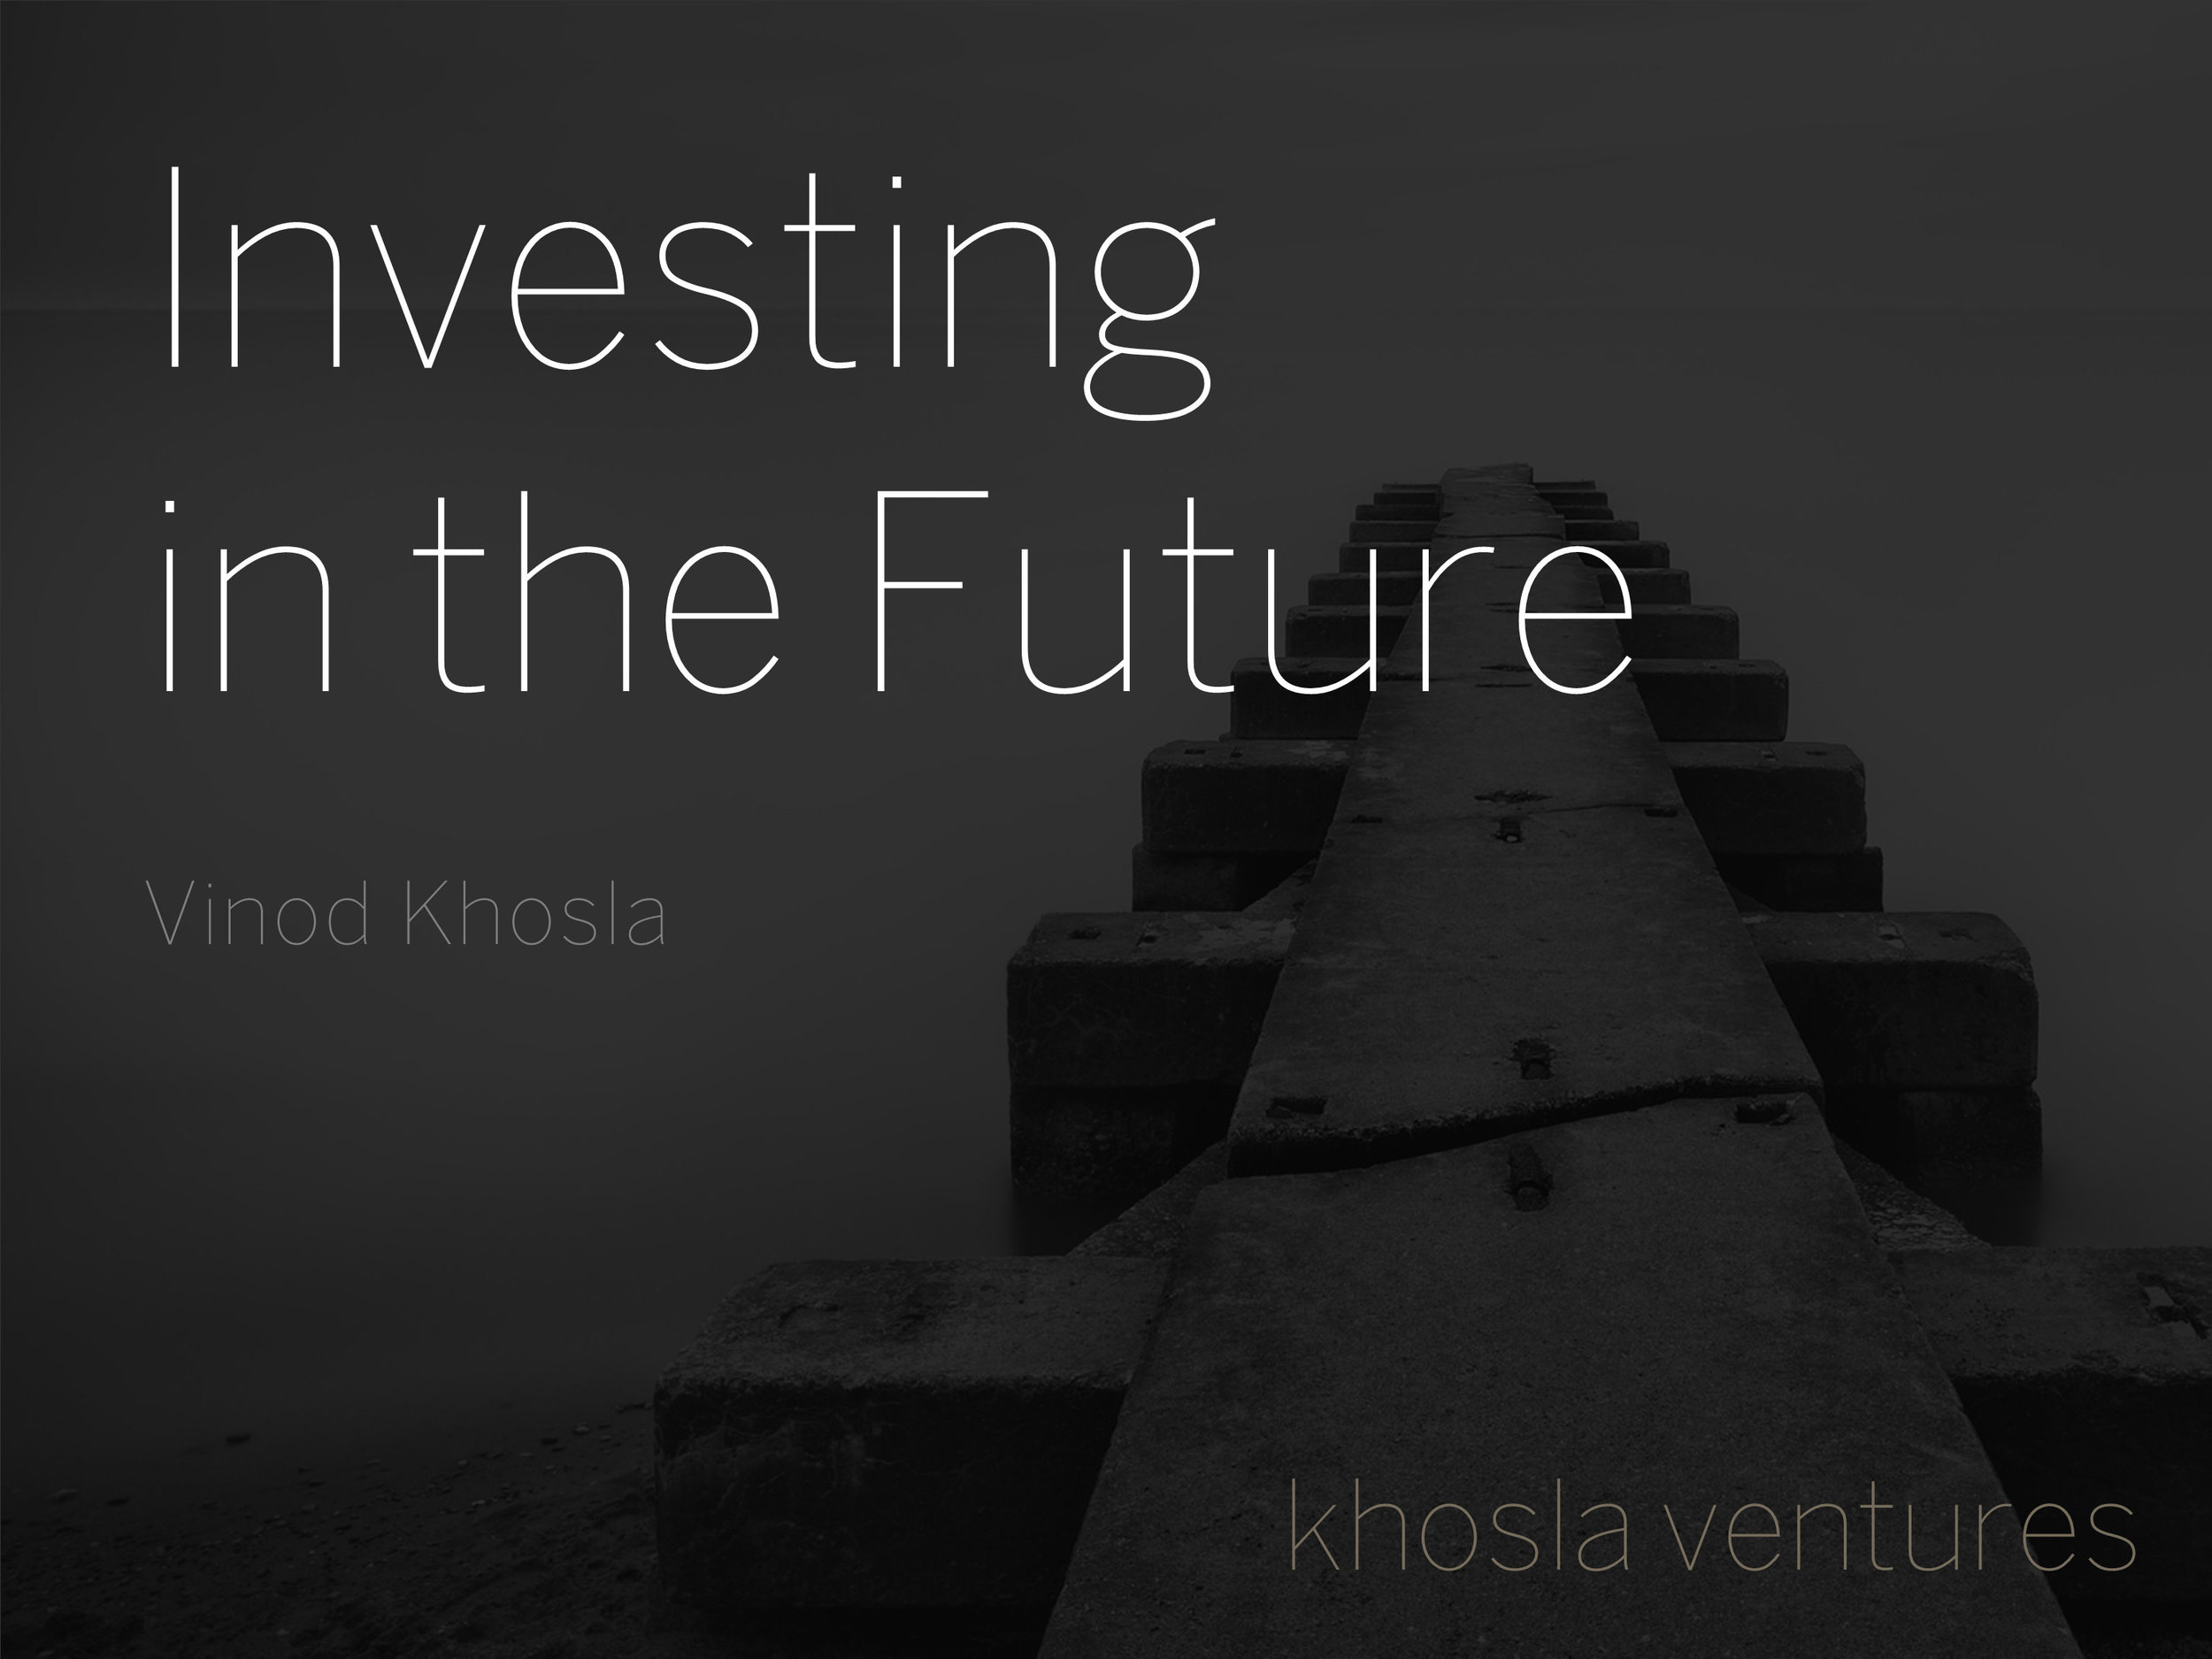 Investing in the Future  Vinod Khosla  khosla ventures     5 Billion  people want to live like  500 Million  do today